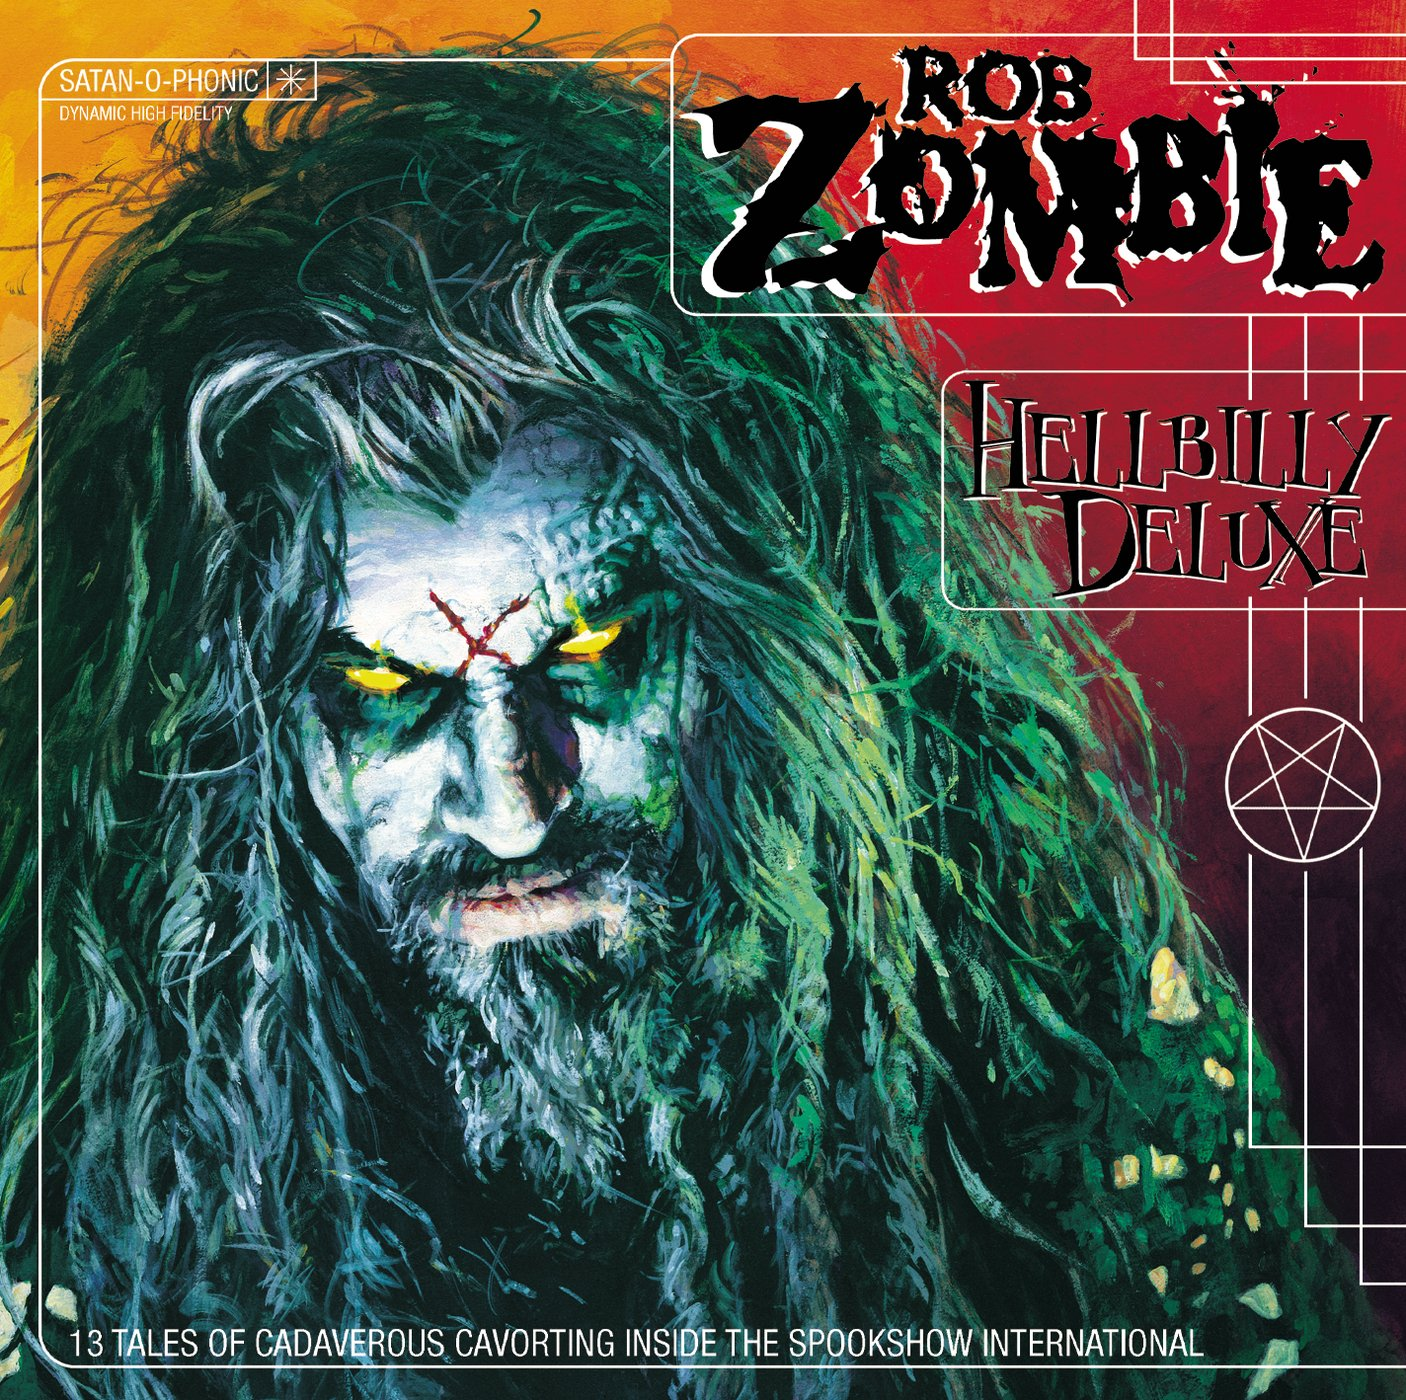 Rob Zombie Hellbilly Deluxe Album Art Rob Zombie Hellbilly Deluxe